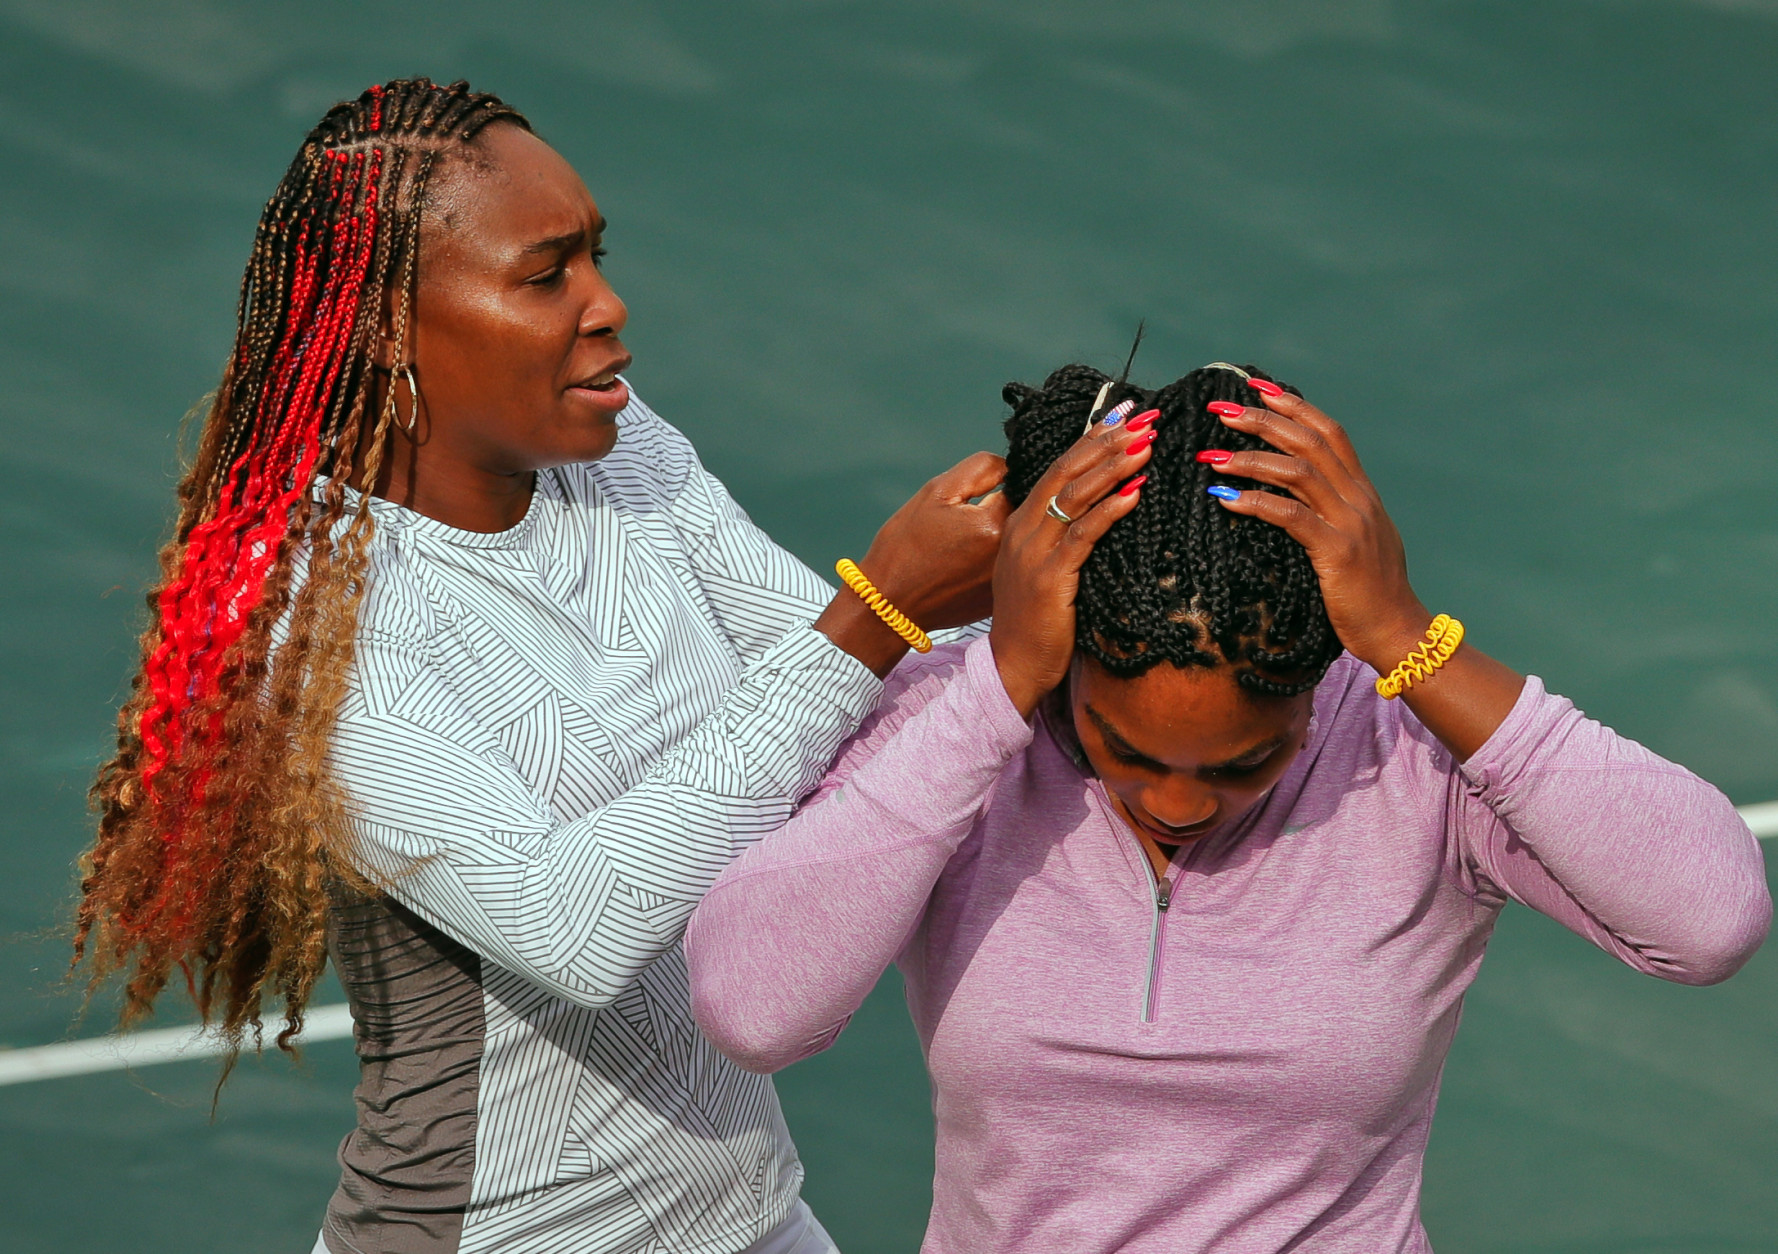 Venus Williams of the United States, left, helps her sister Serena Williams adjust her hair before a practice session on the central court ahead of the upcoming 2016 Summer Olympics in Rio de Janeiro, Brazil, Wednesday, Aug. 3, 2016. (AP Photo/Vadim Ghirda)